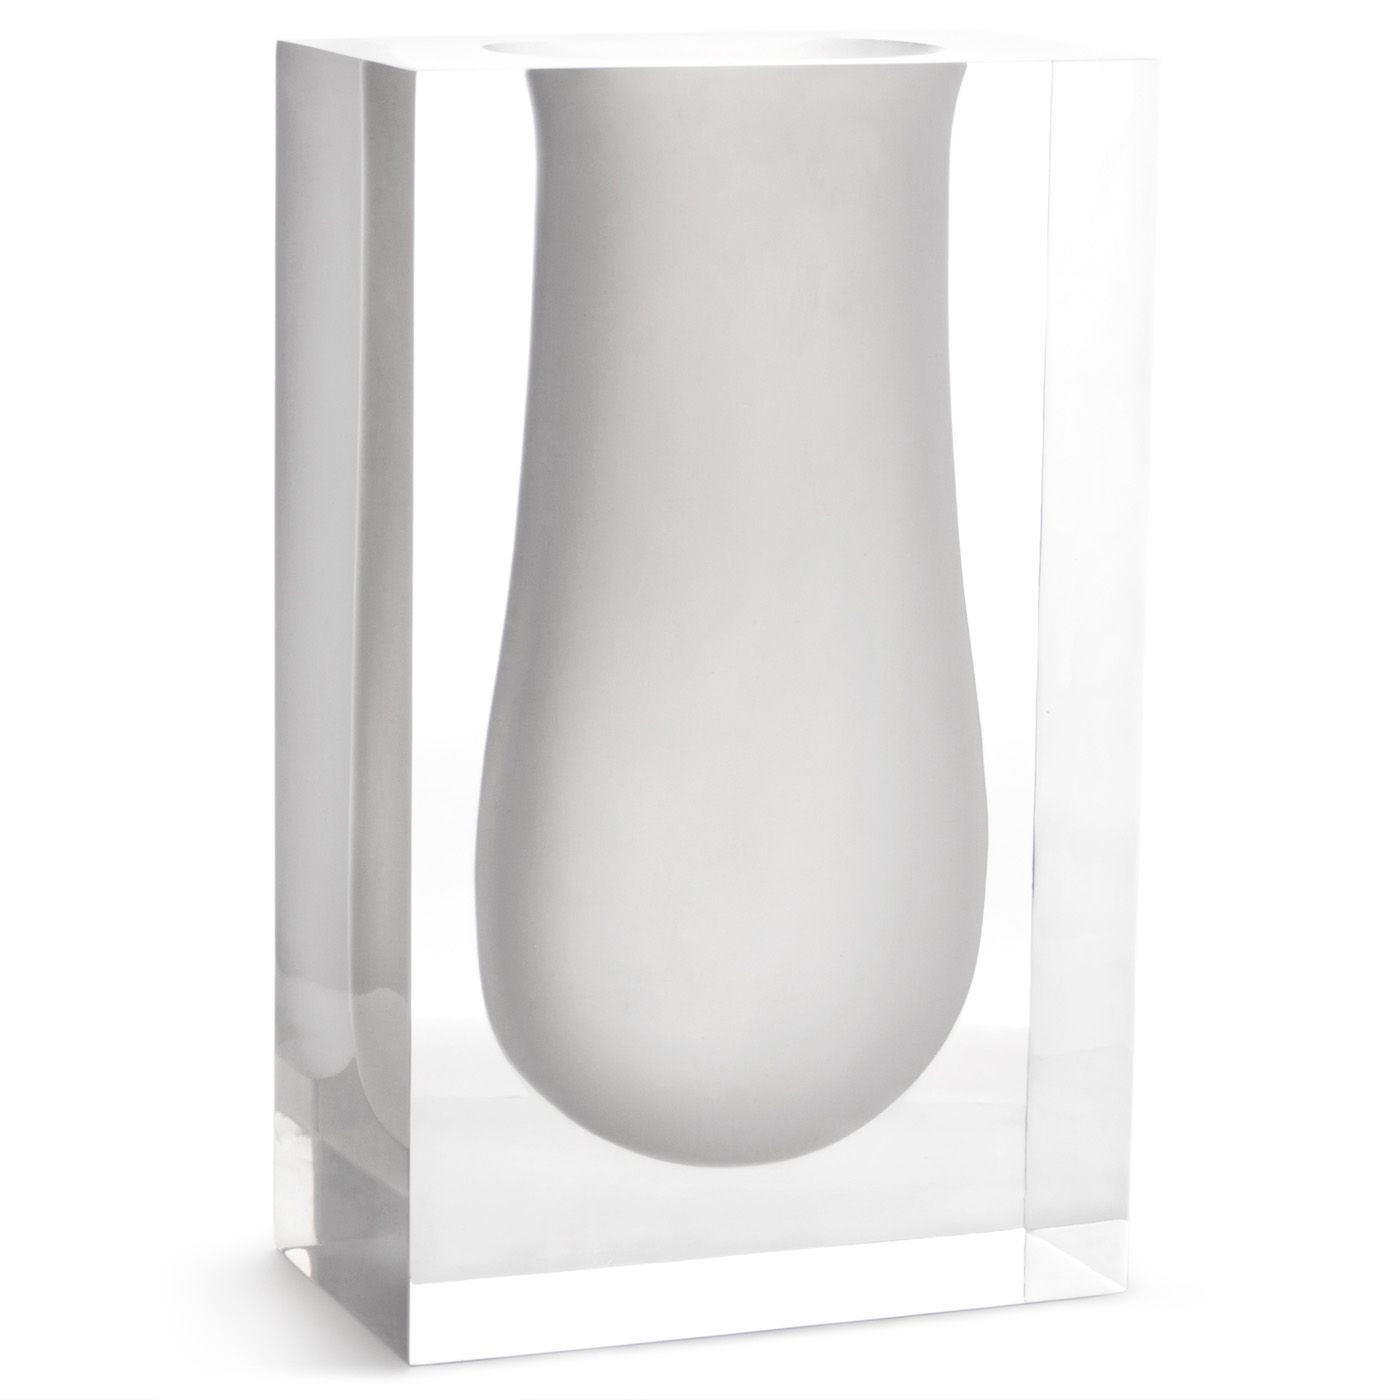 Jonathan Adler Lucite Vase Of Modern Home Decor Bel Air Mega Scoop Lucite Vase Jonathan Adler In Modern Home Decor Bel Air Mega Scoop Lucite Vase Jonathan Adler